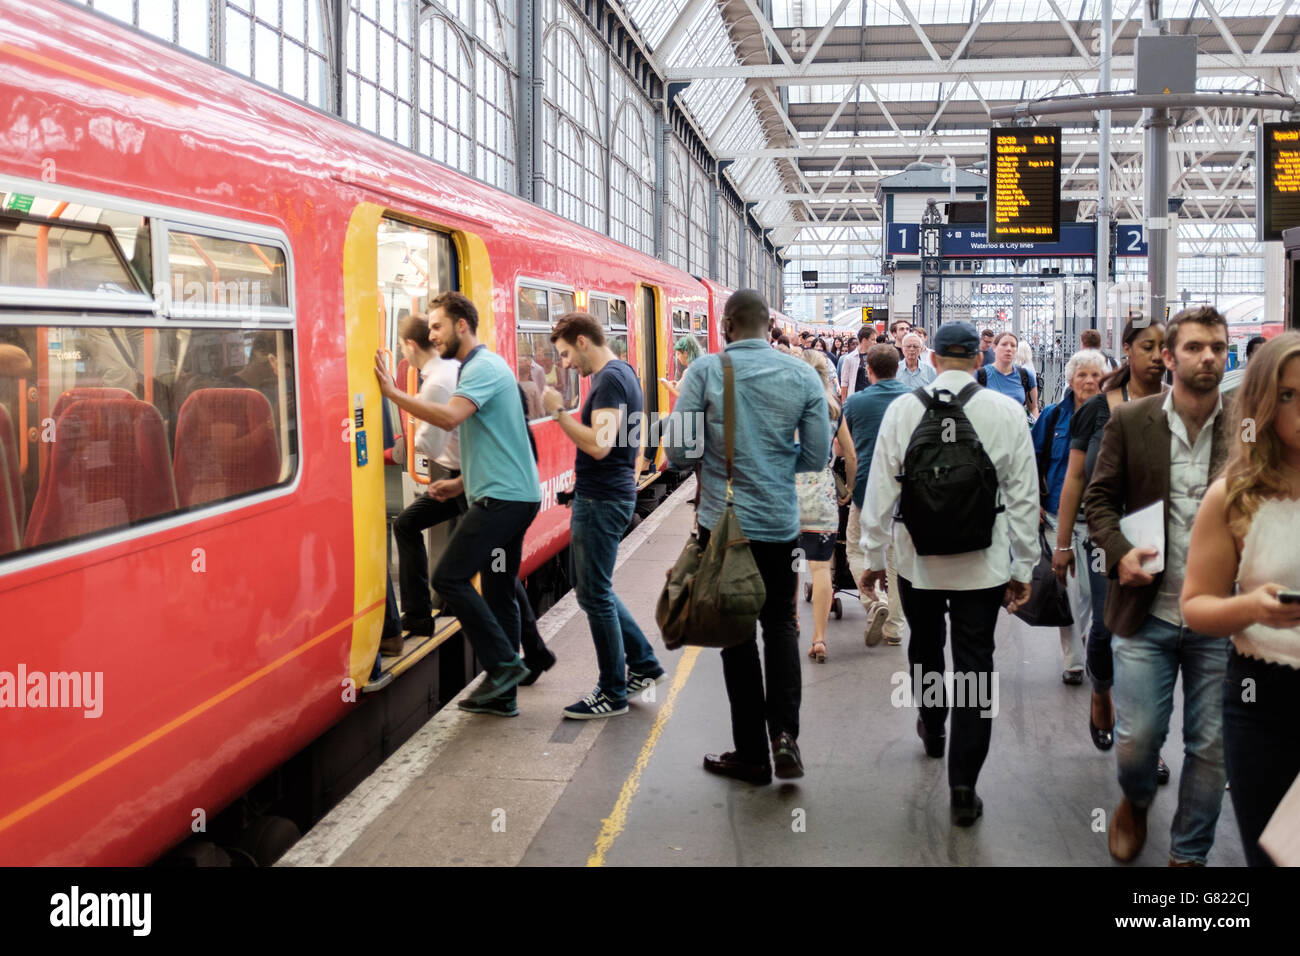 Commuters on the  train platform,Waterloo station,London,UK - Stock Image